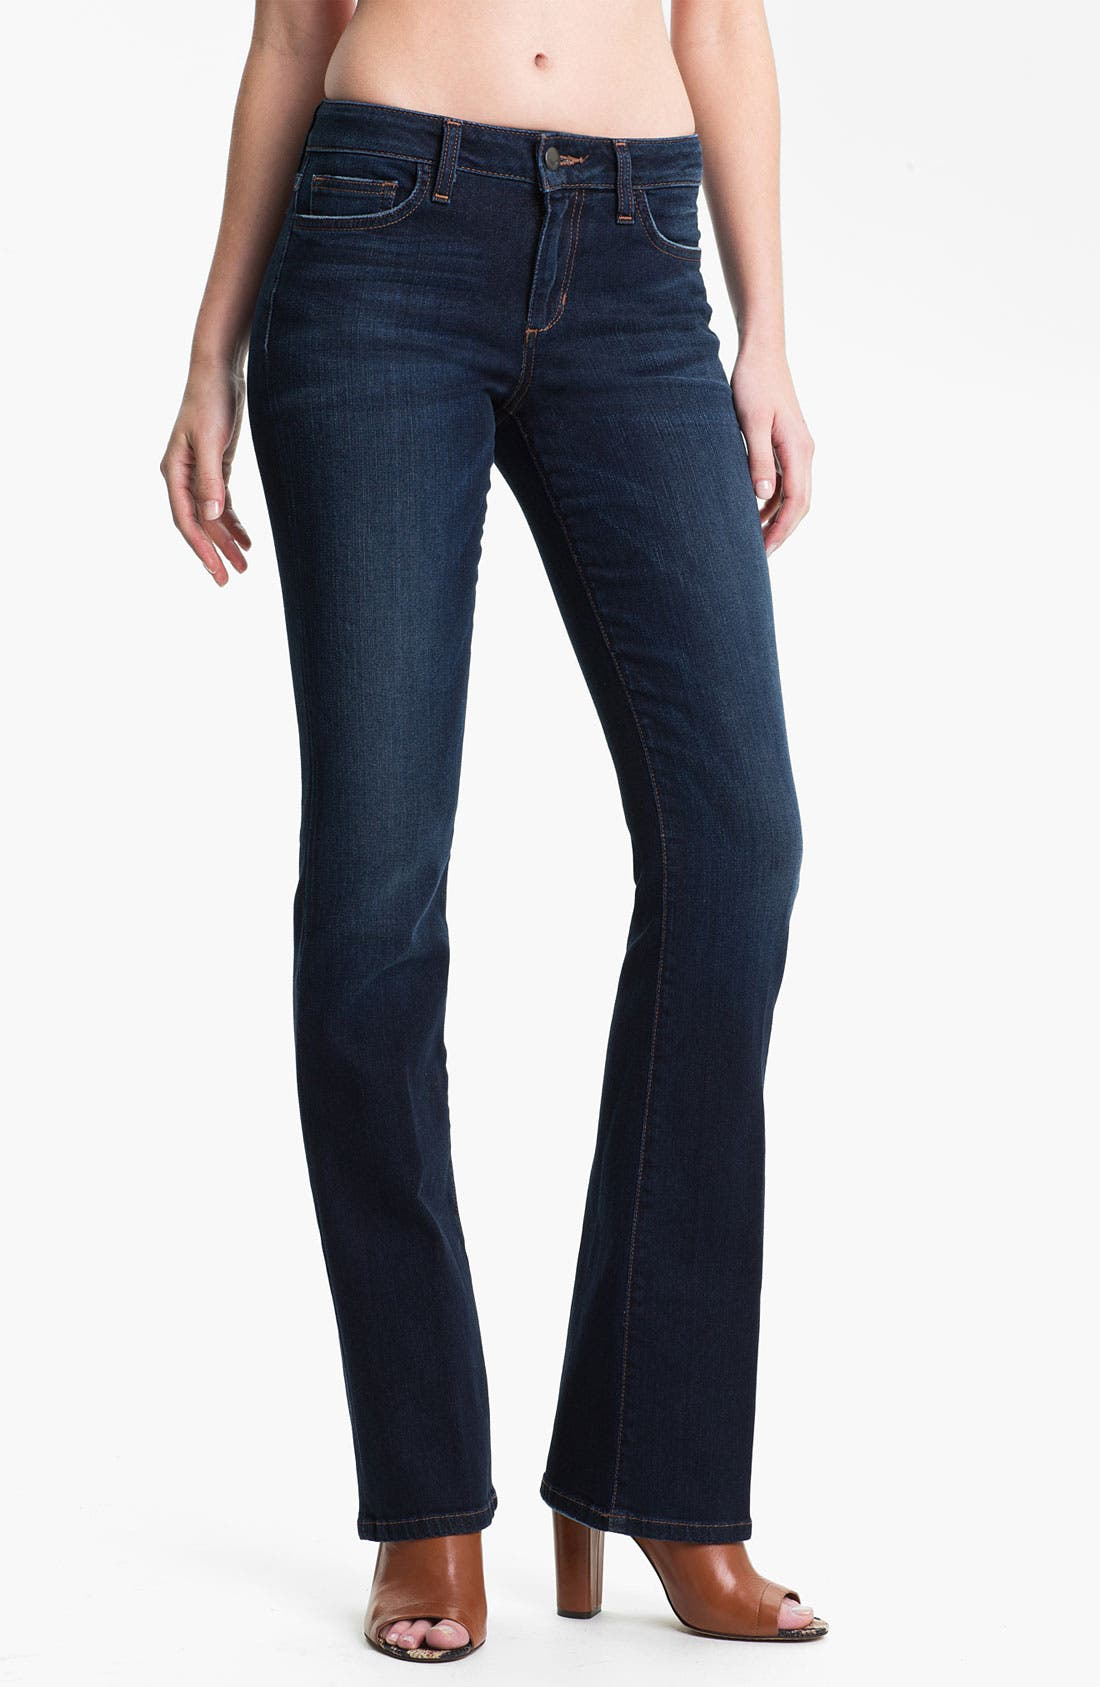 Alternate Image 1 Selected - Joe's Jeans 'The Honey' Curvy Bootcut Jeans (Marty)